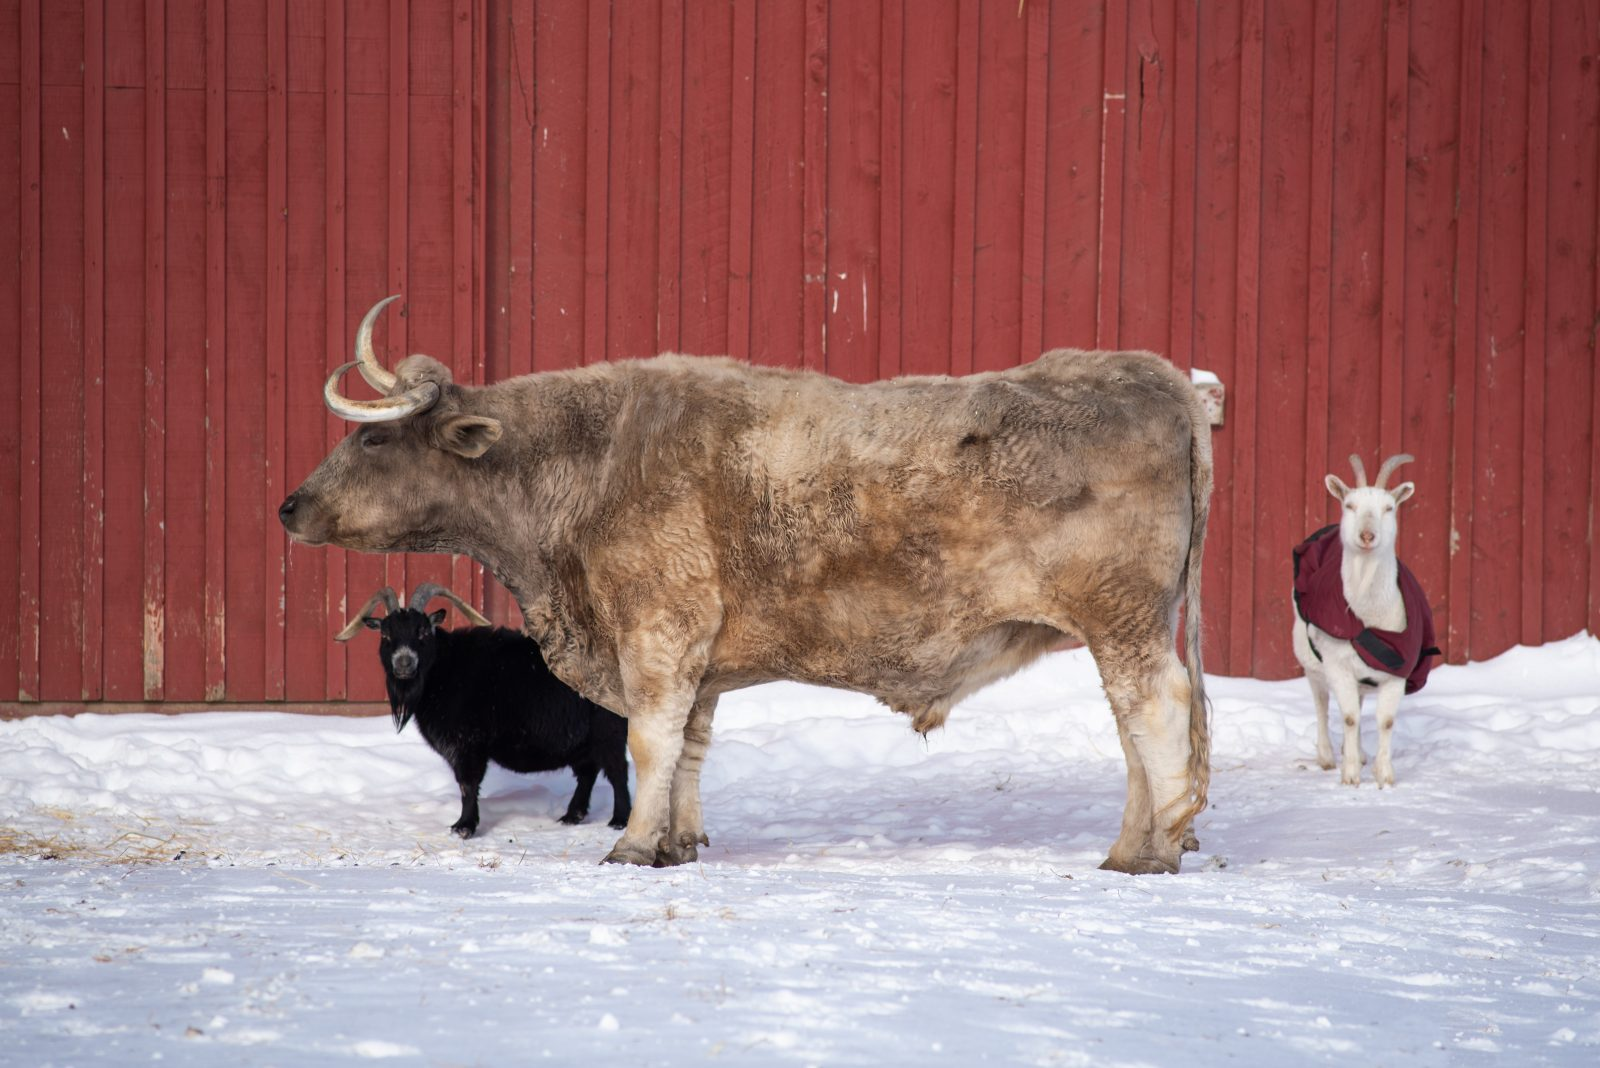 Wilson goat and Isaac steer in the snow at Farm Sanctuary